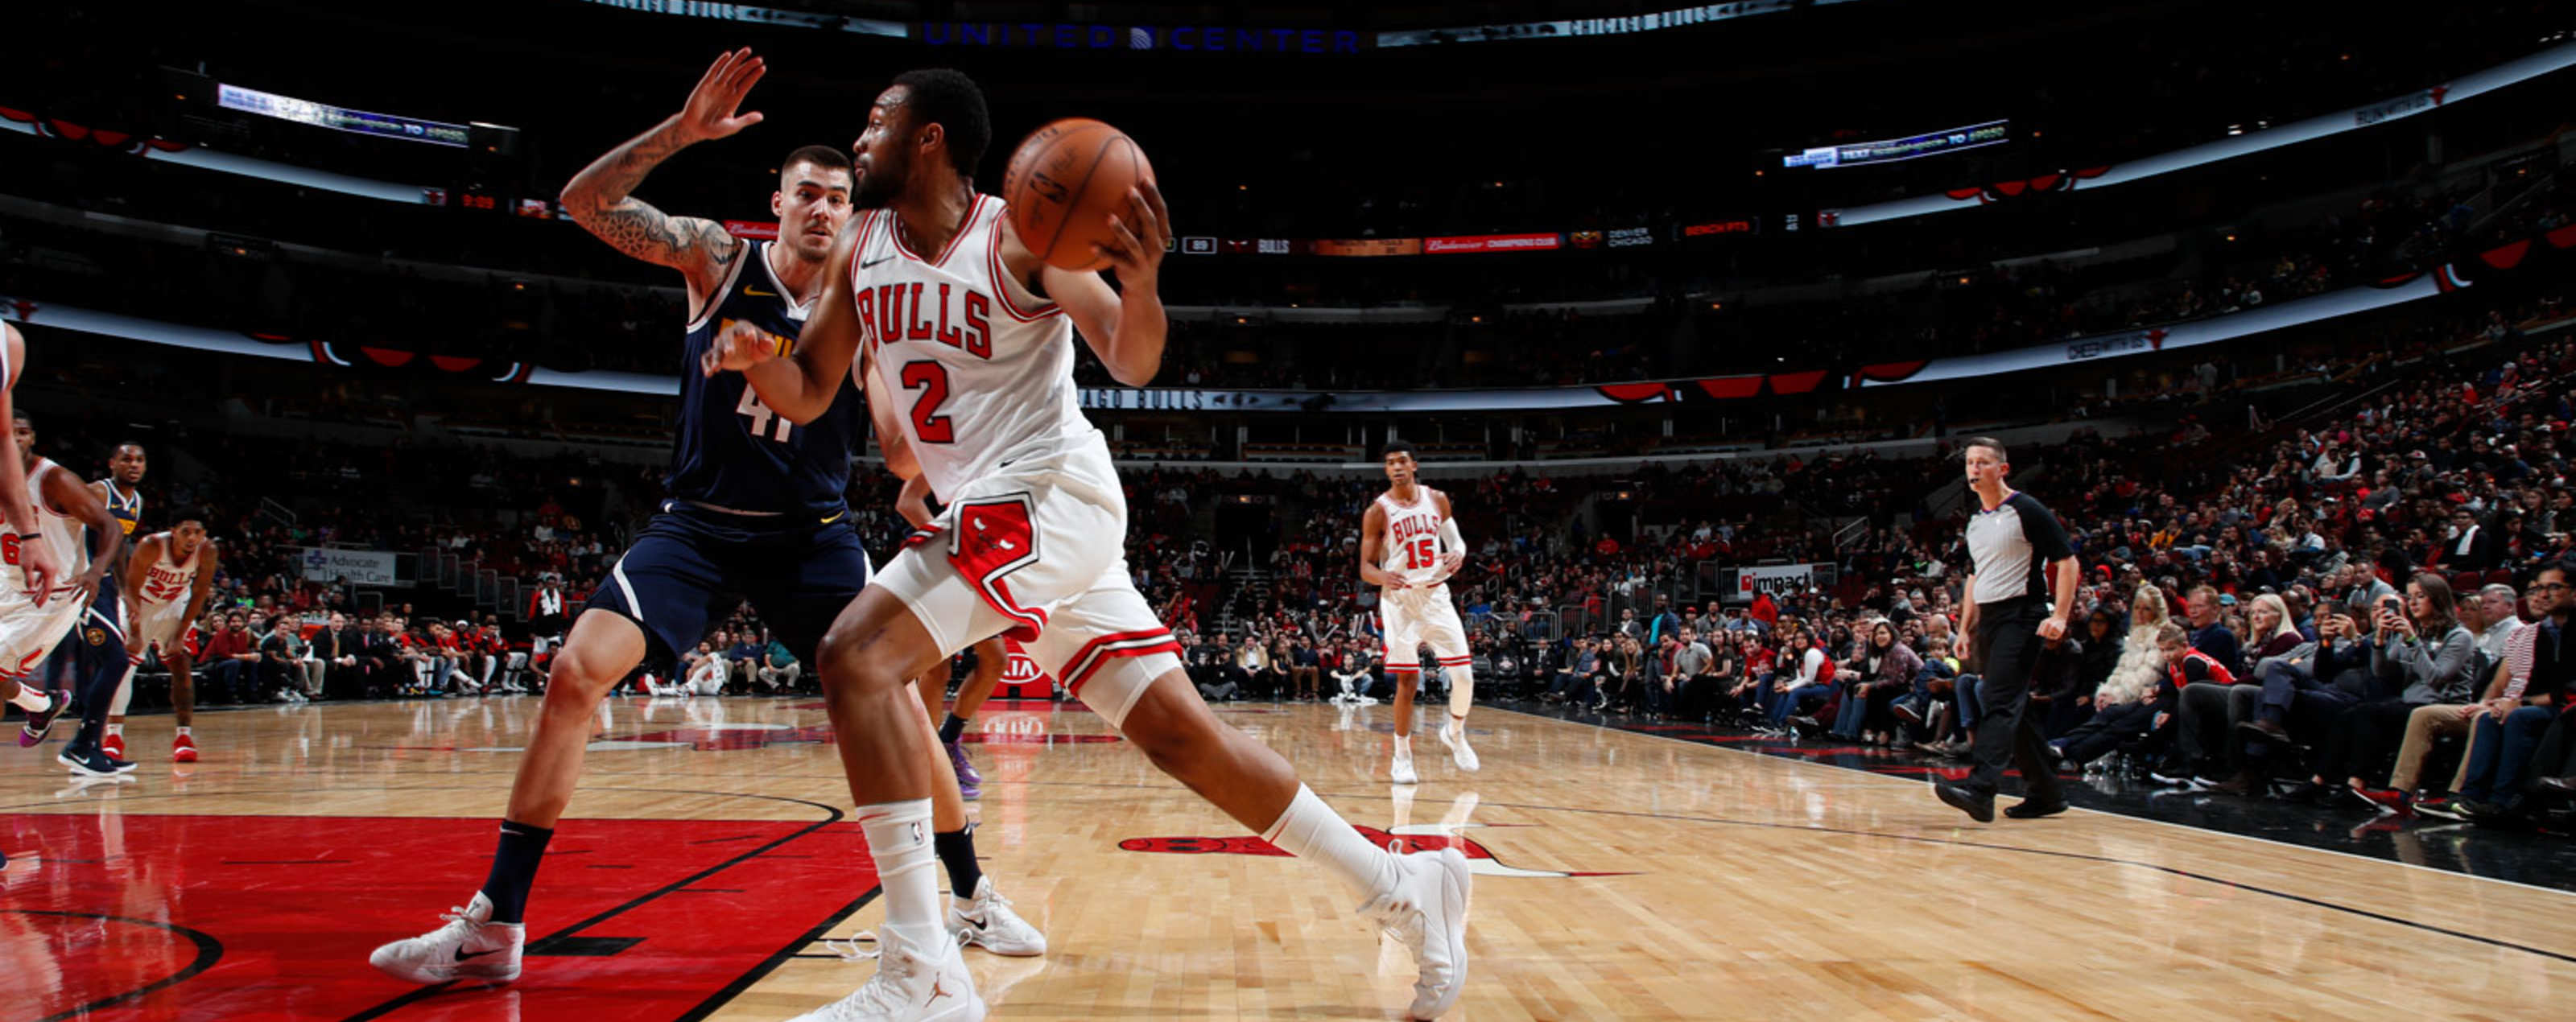 Jabari Parker #2 of the Chicago Bulls drives the ball against the Denver Nuggets